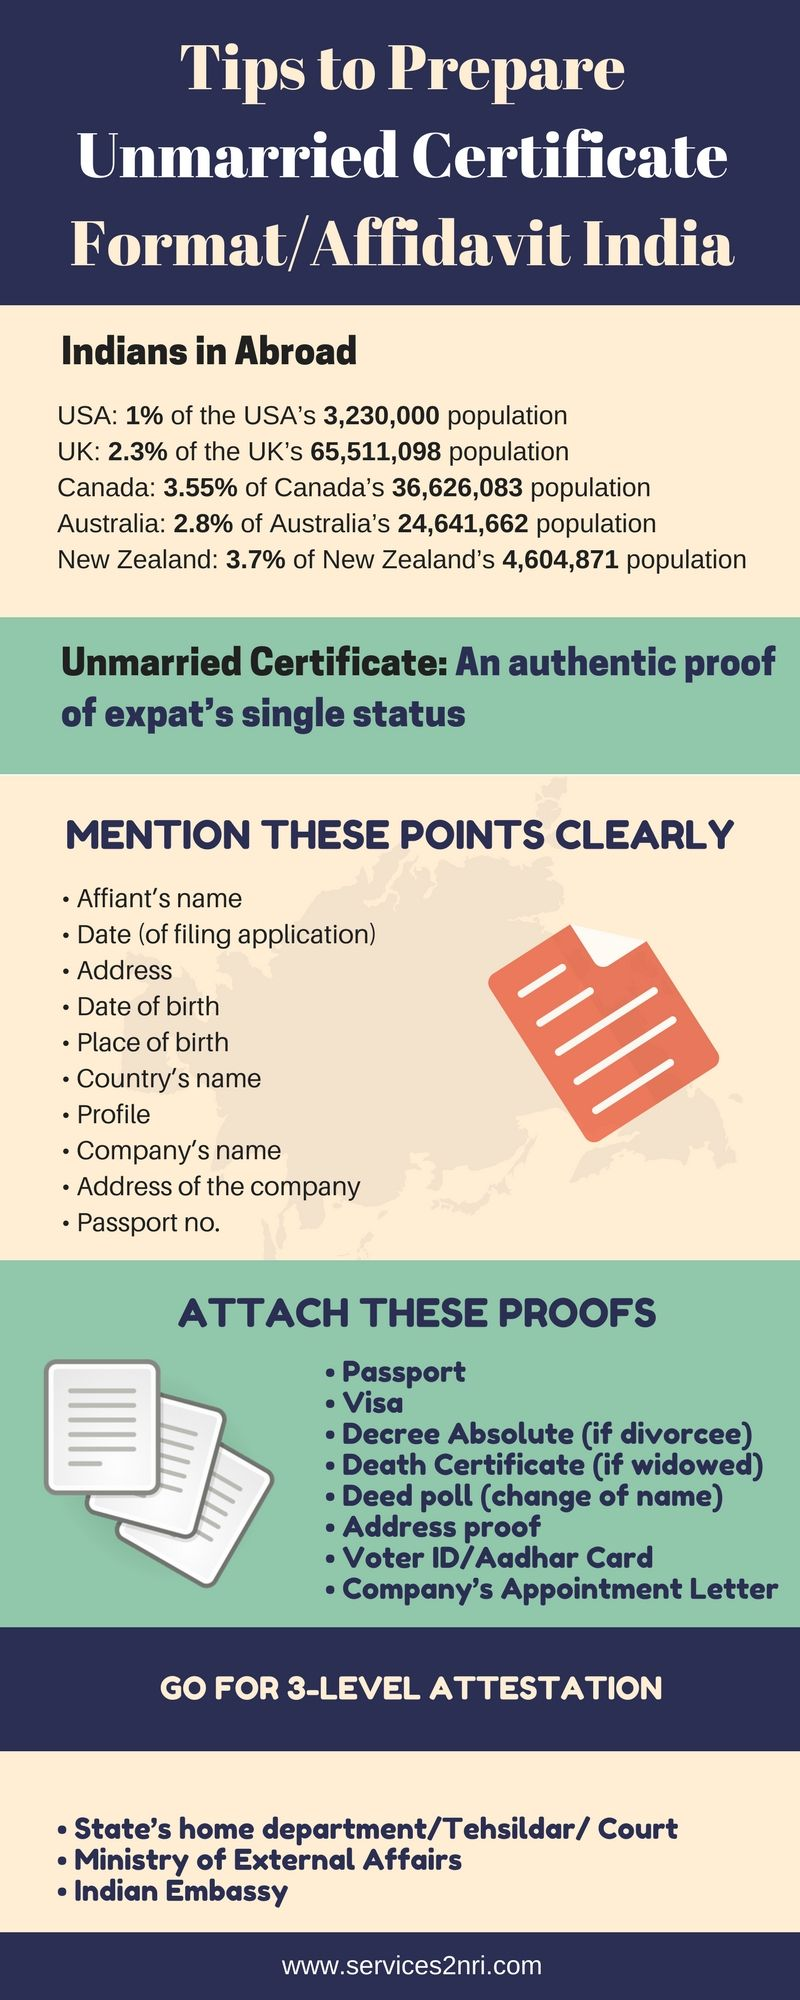 Tips to Prepare Unmarried Certificate Format/Affidavit India